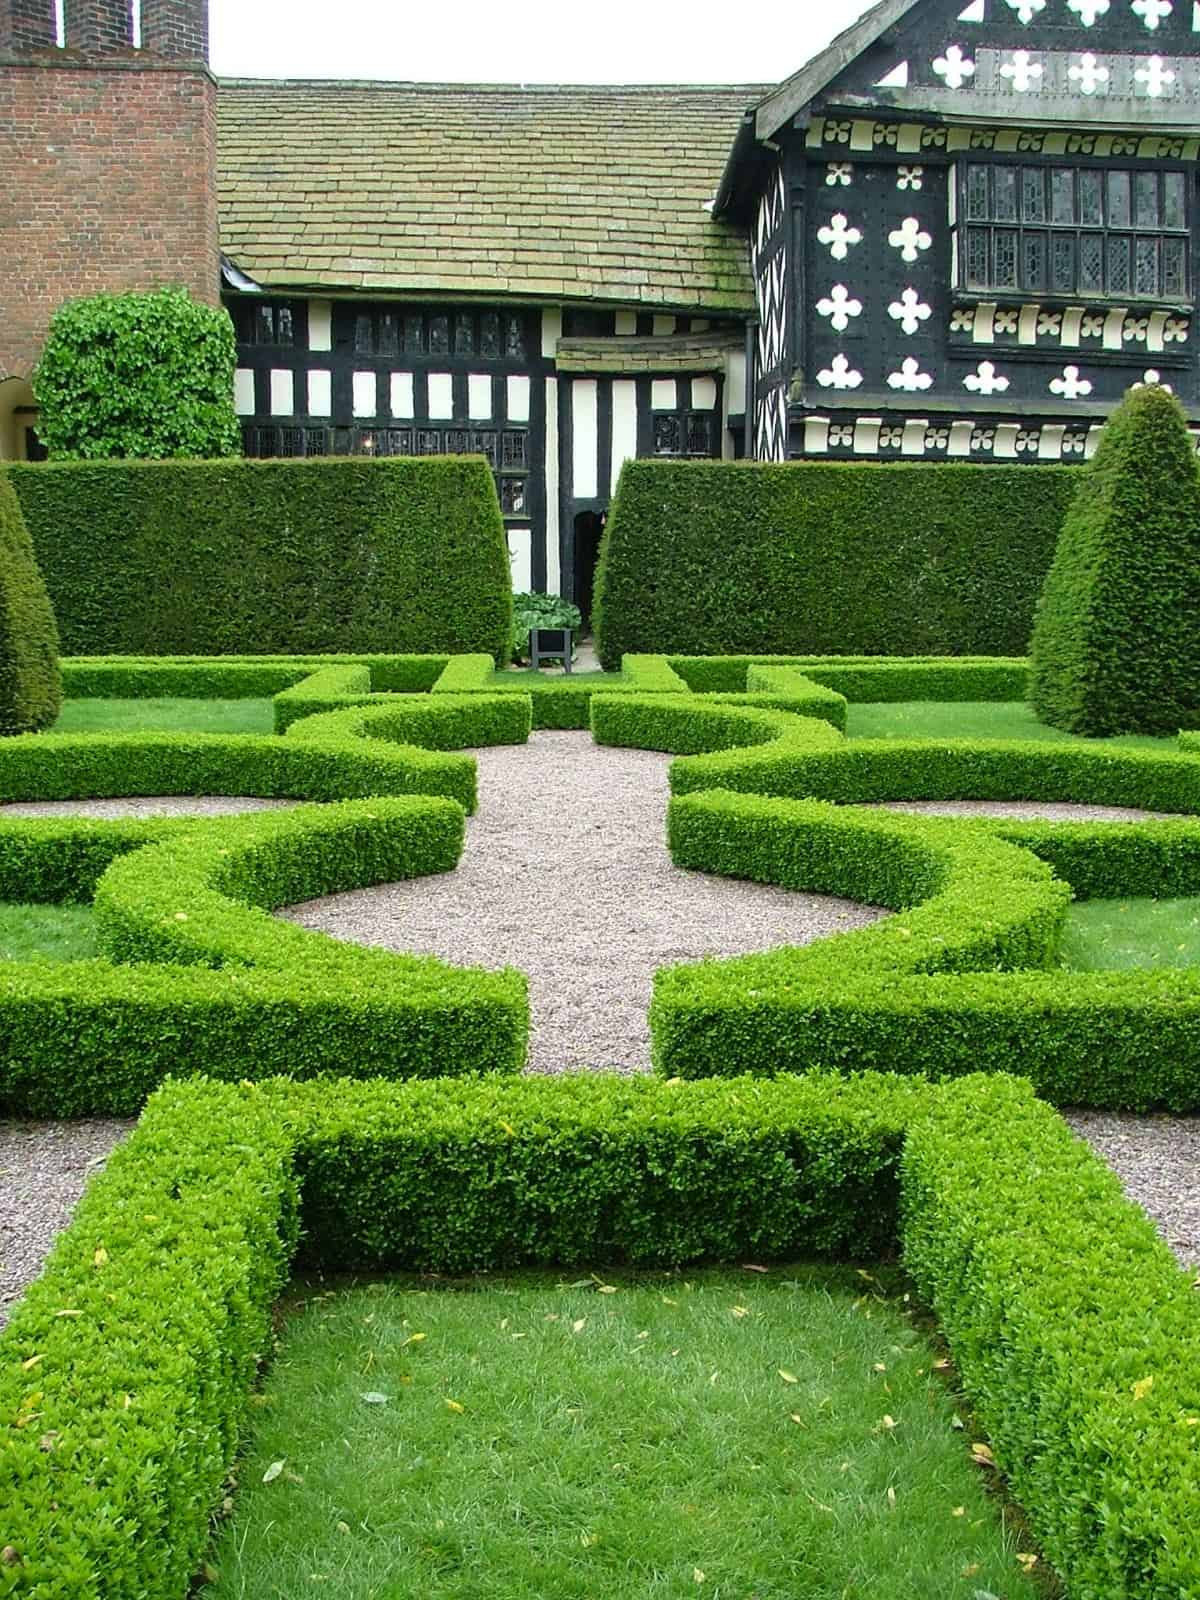 Hedge and knot garden outside Tudor revival house